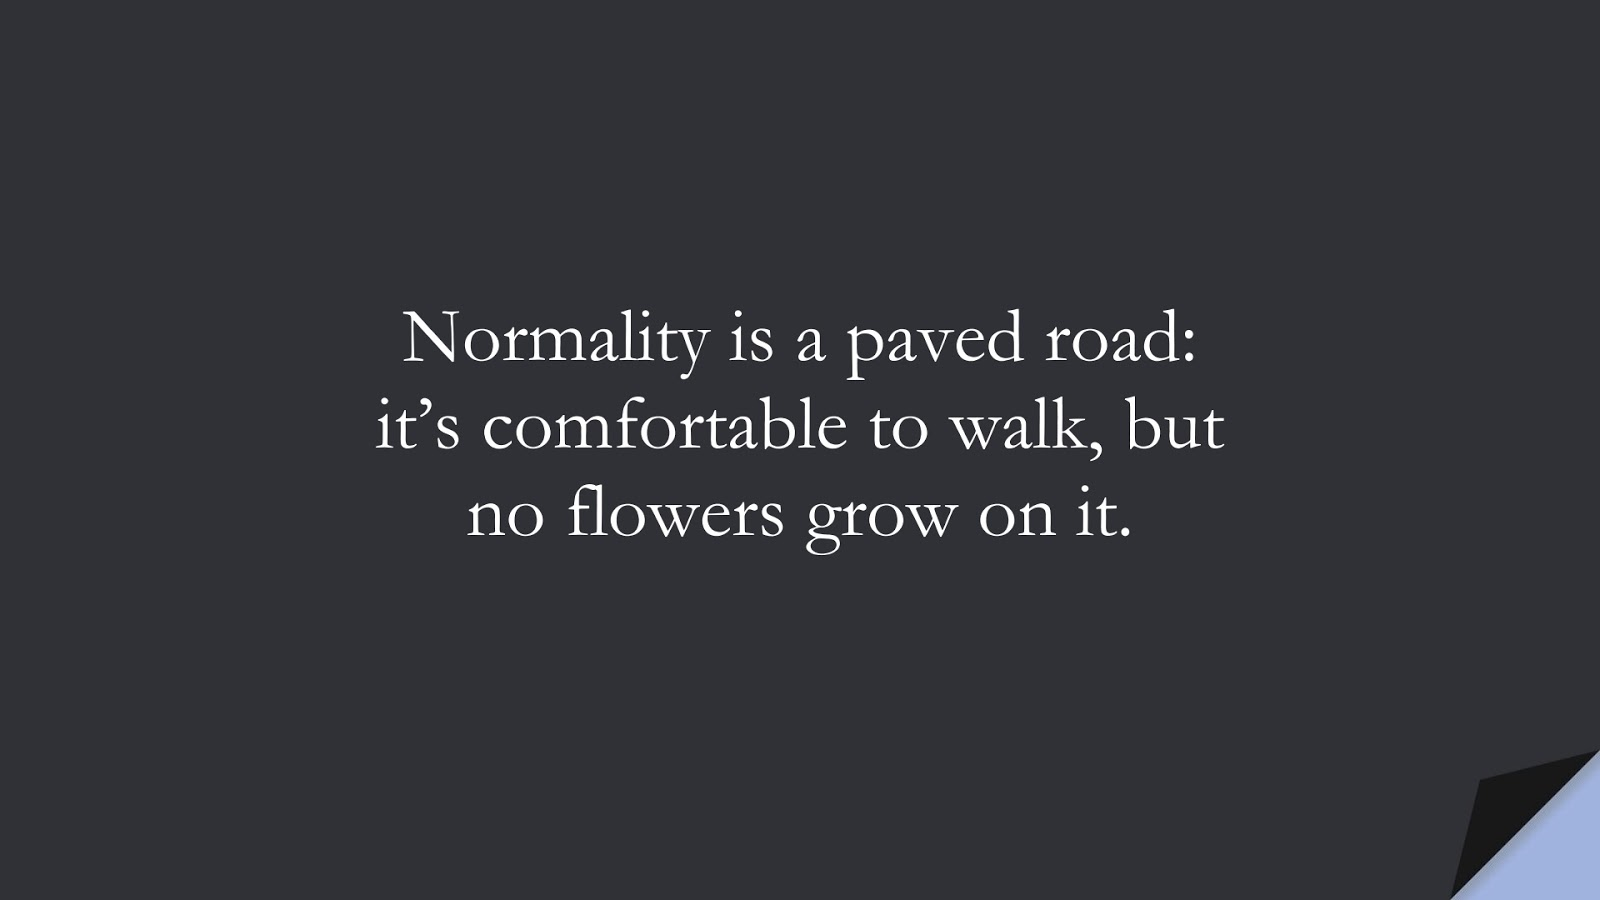 Normality is a paved road: it's comfortable to walk, but no flowers grow on it.FALSE